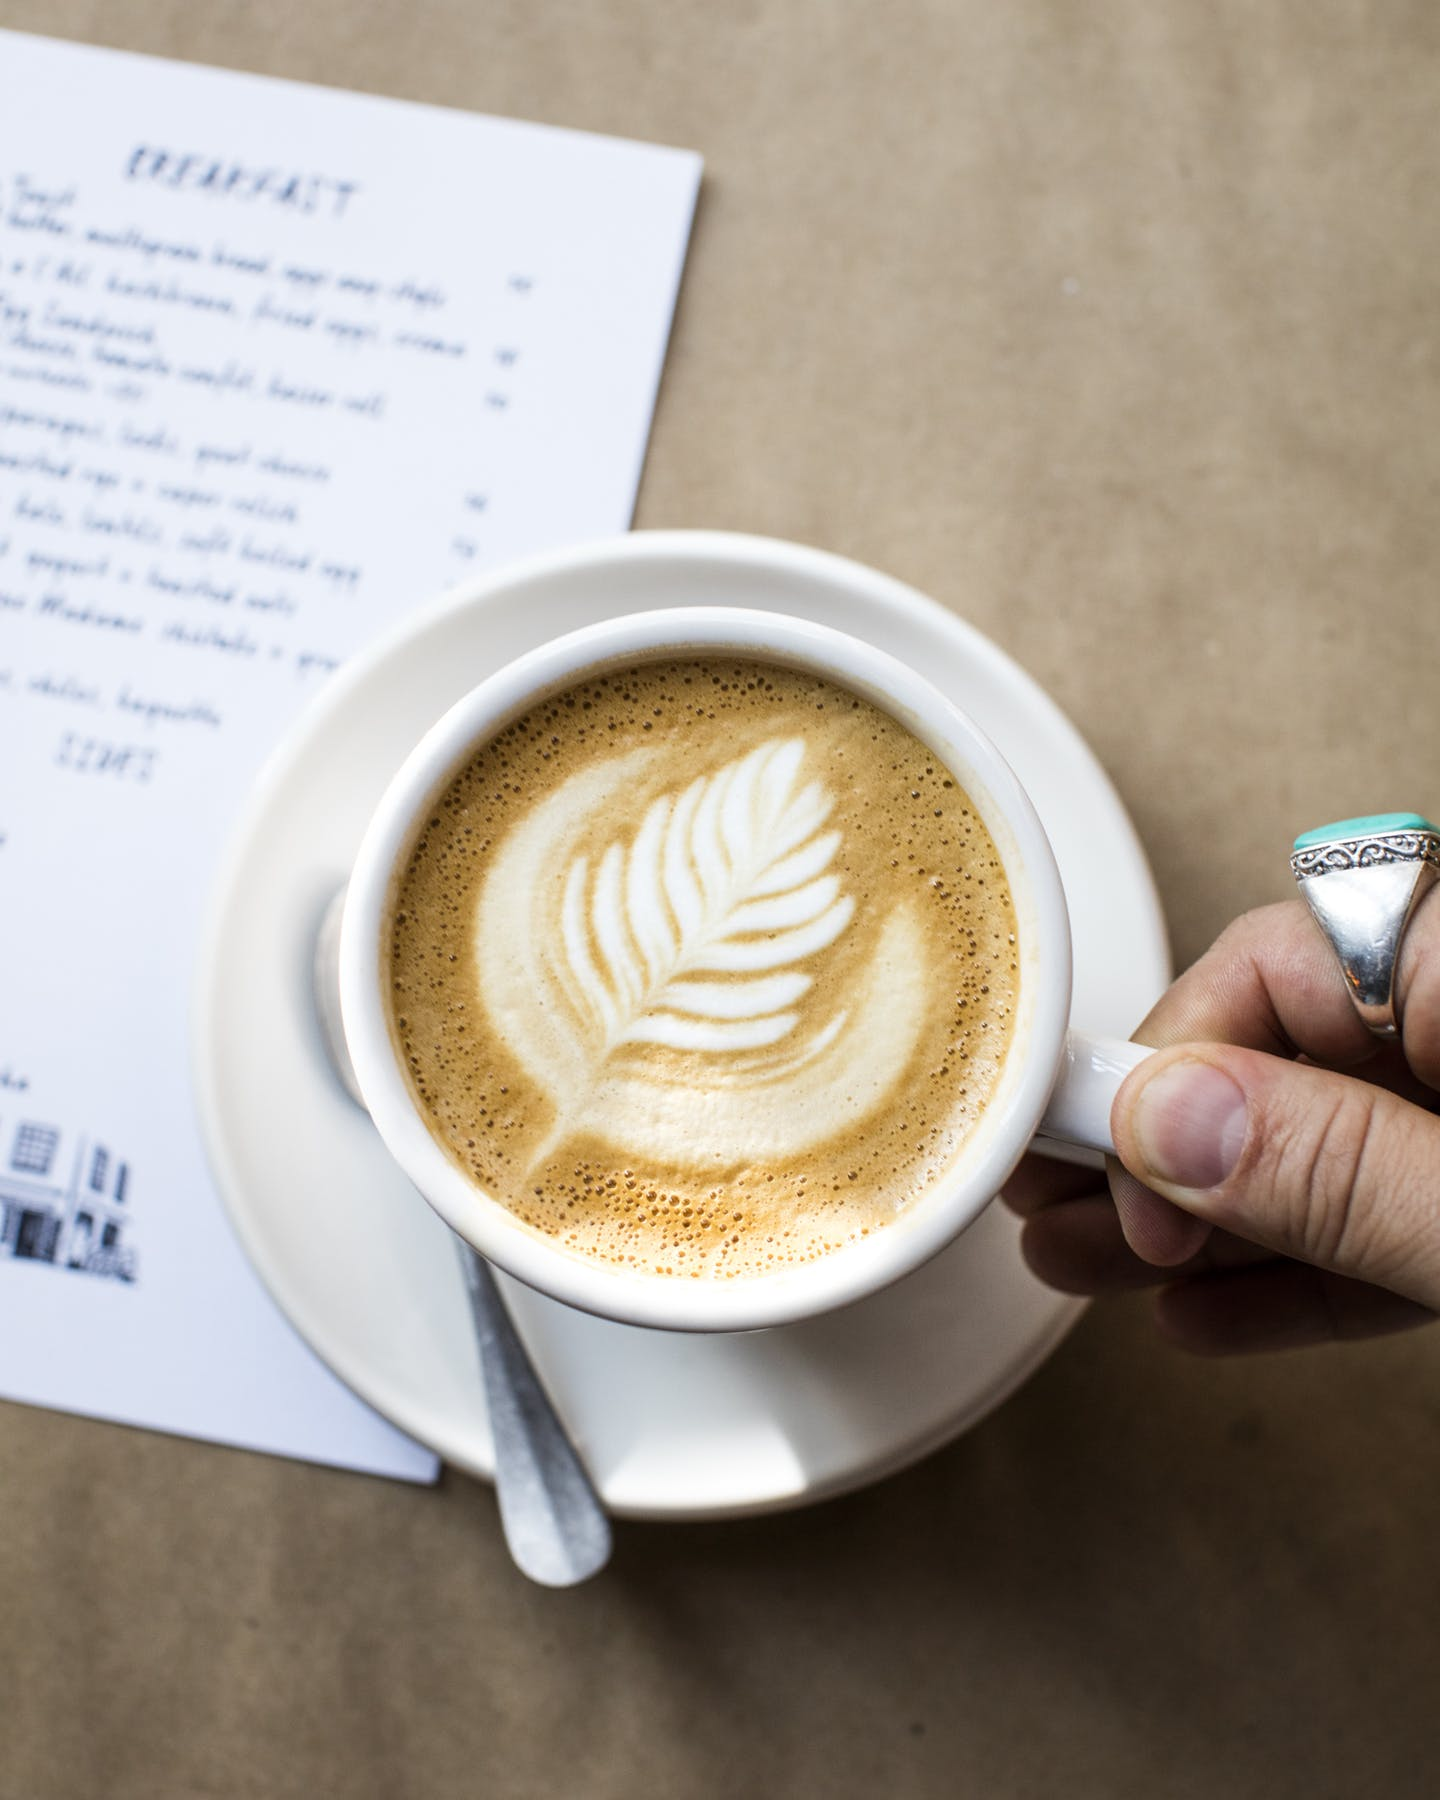 a hand holding a cup of coffee